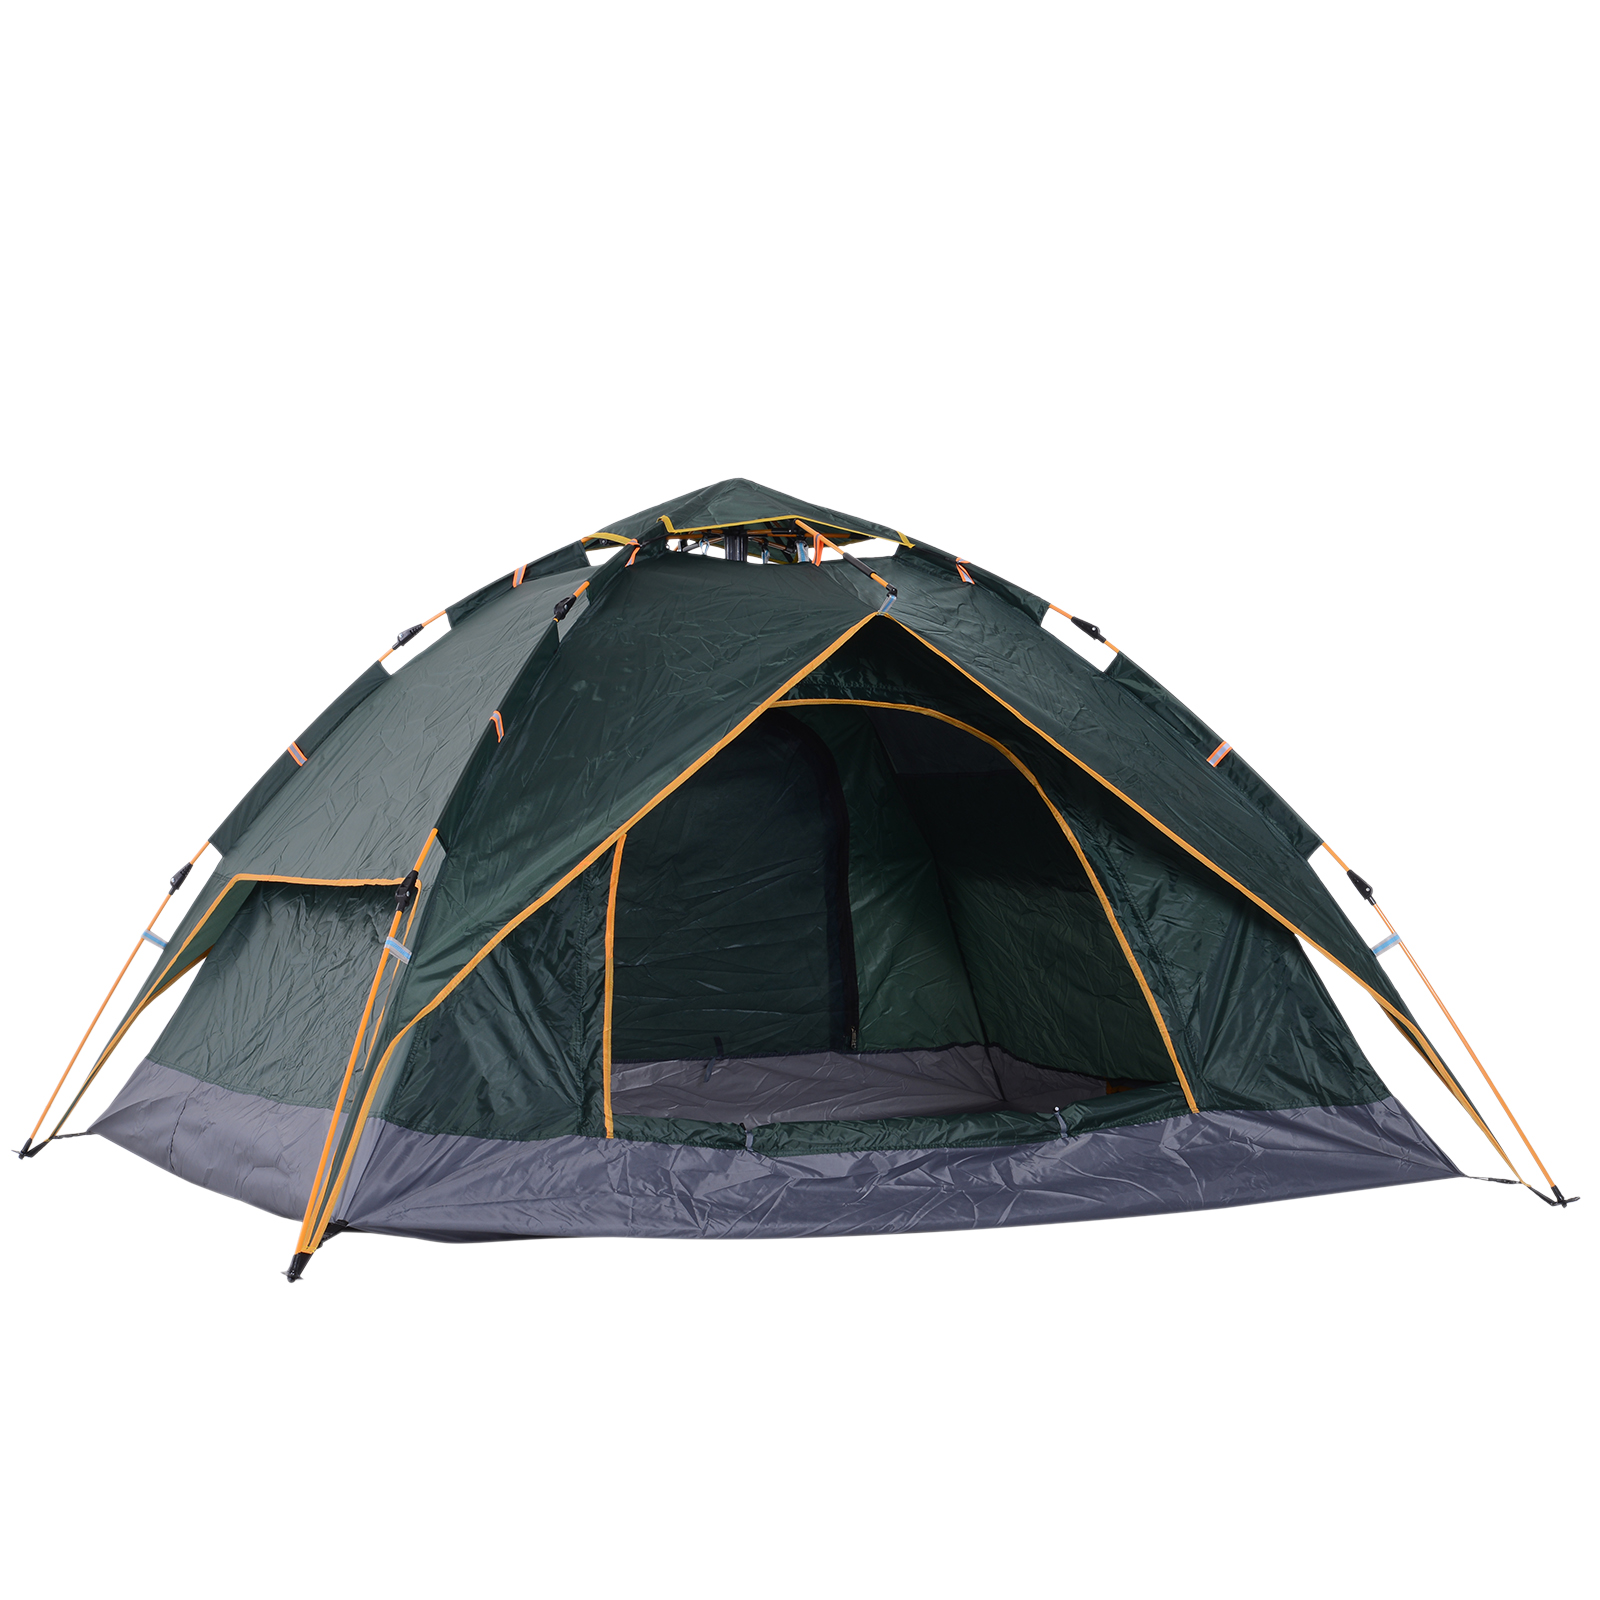 Outsunny Camping Tent, 210Wx210Lx140H cm-Dark Green